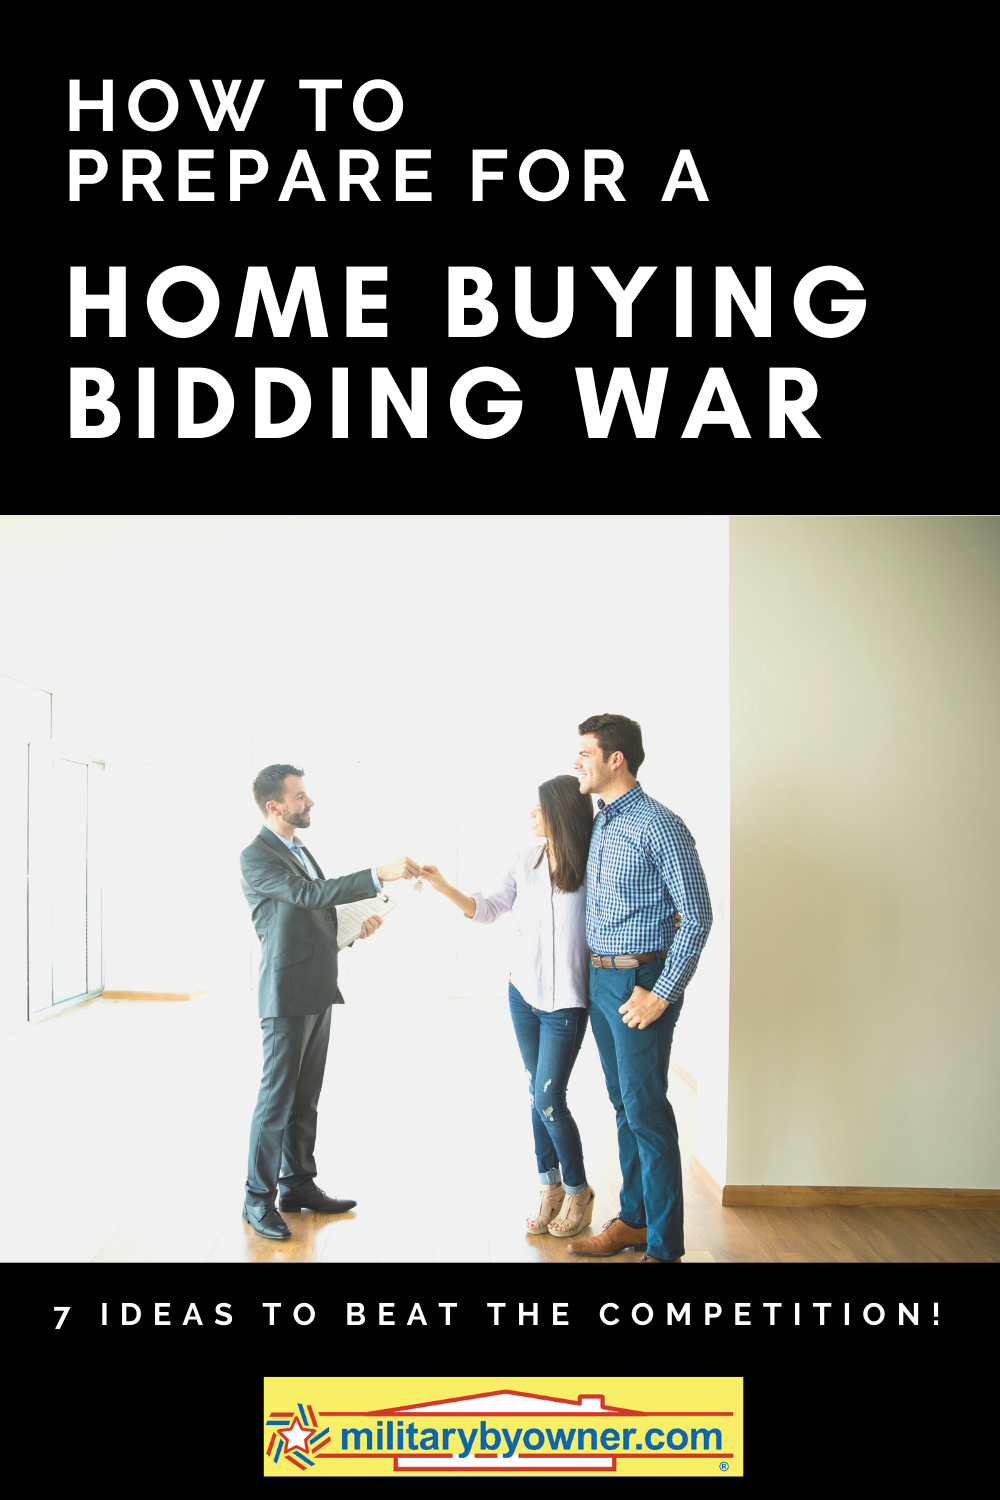 How to Prepare for a Home Buying Bidding War